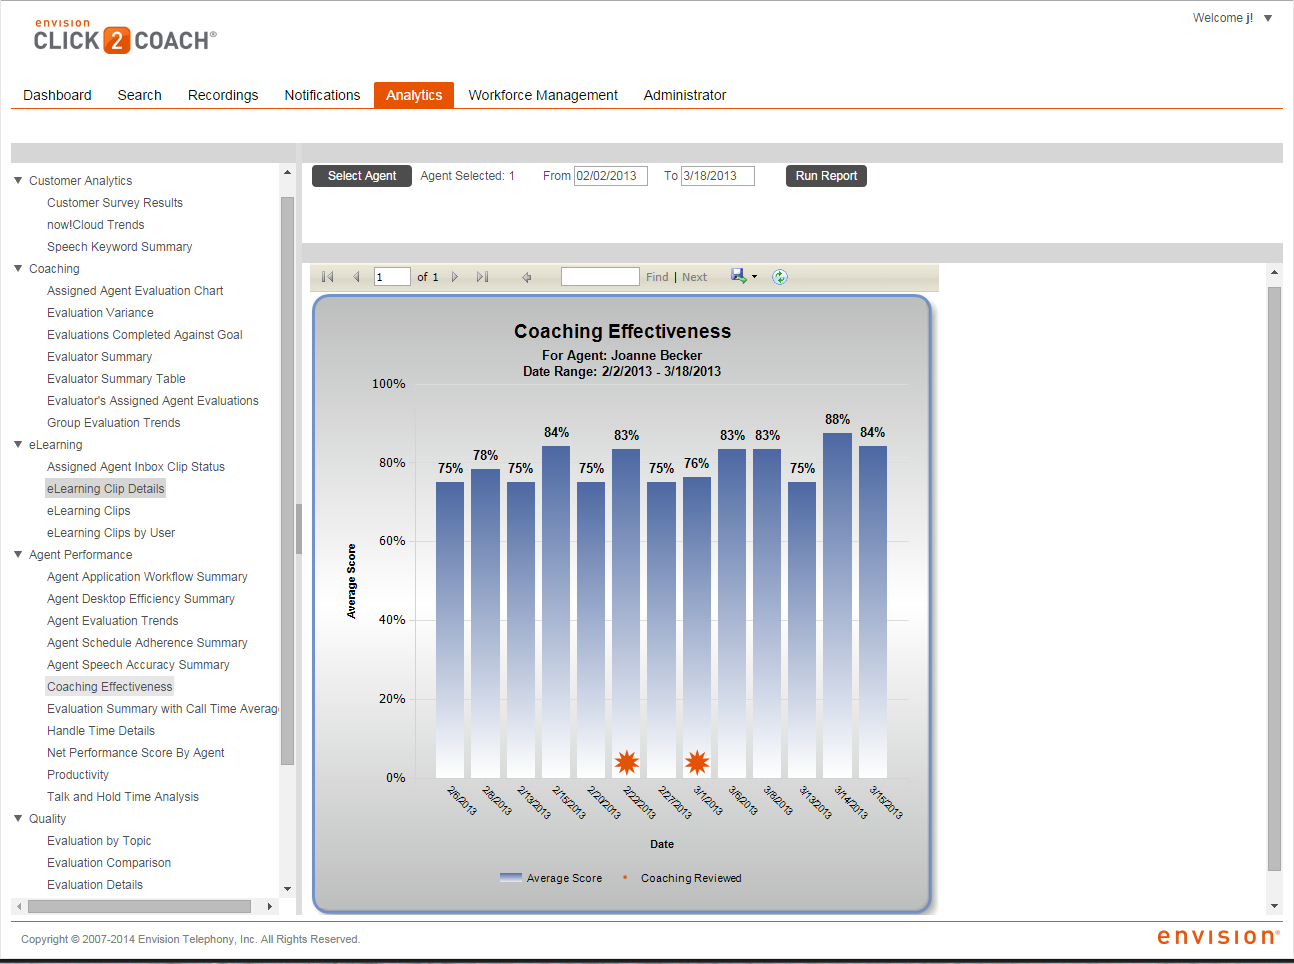 Click2Coach Software - Click2Coach analytics page